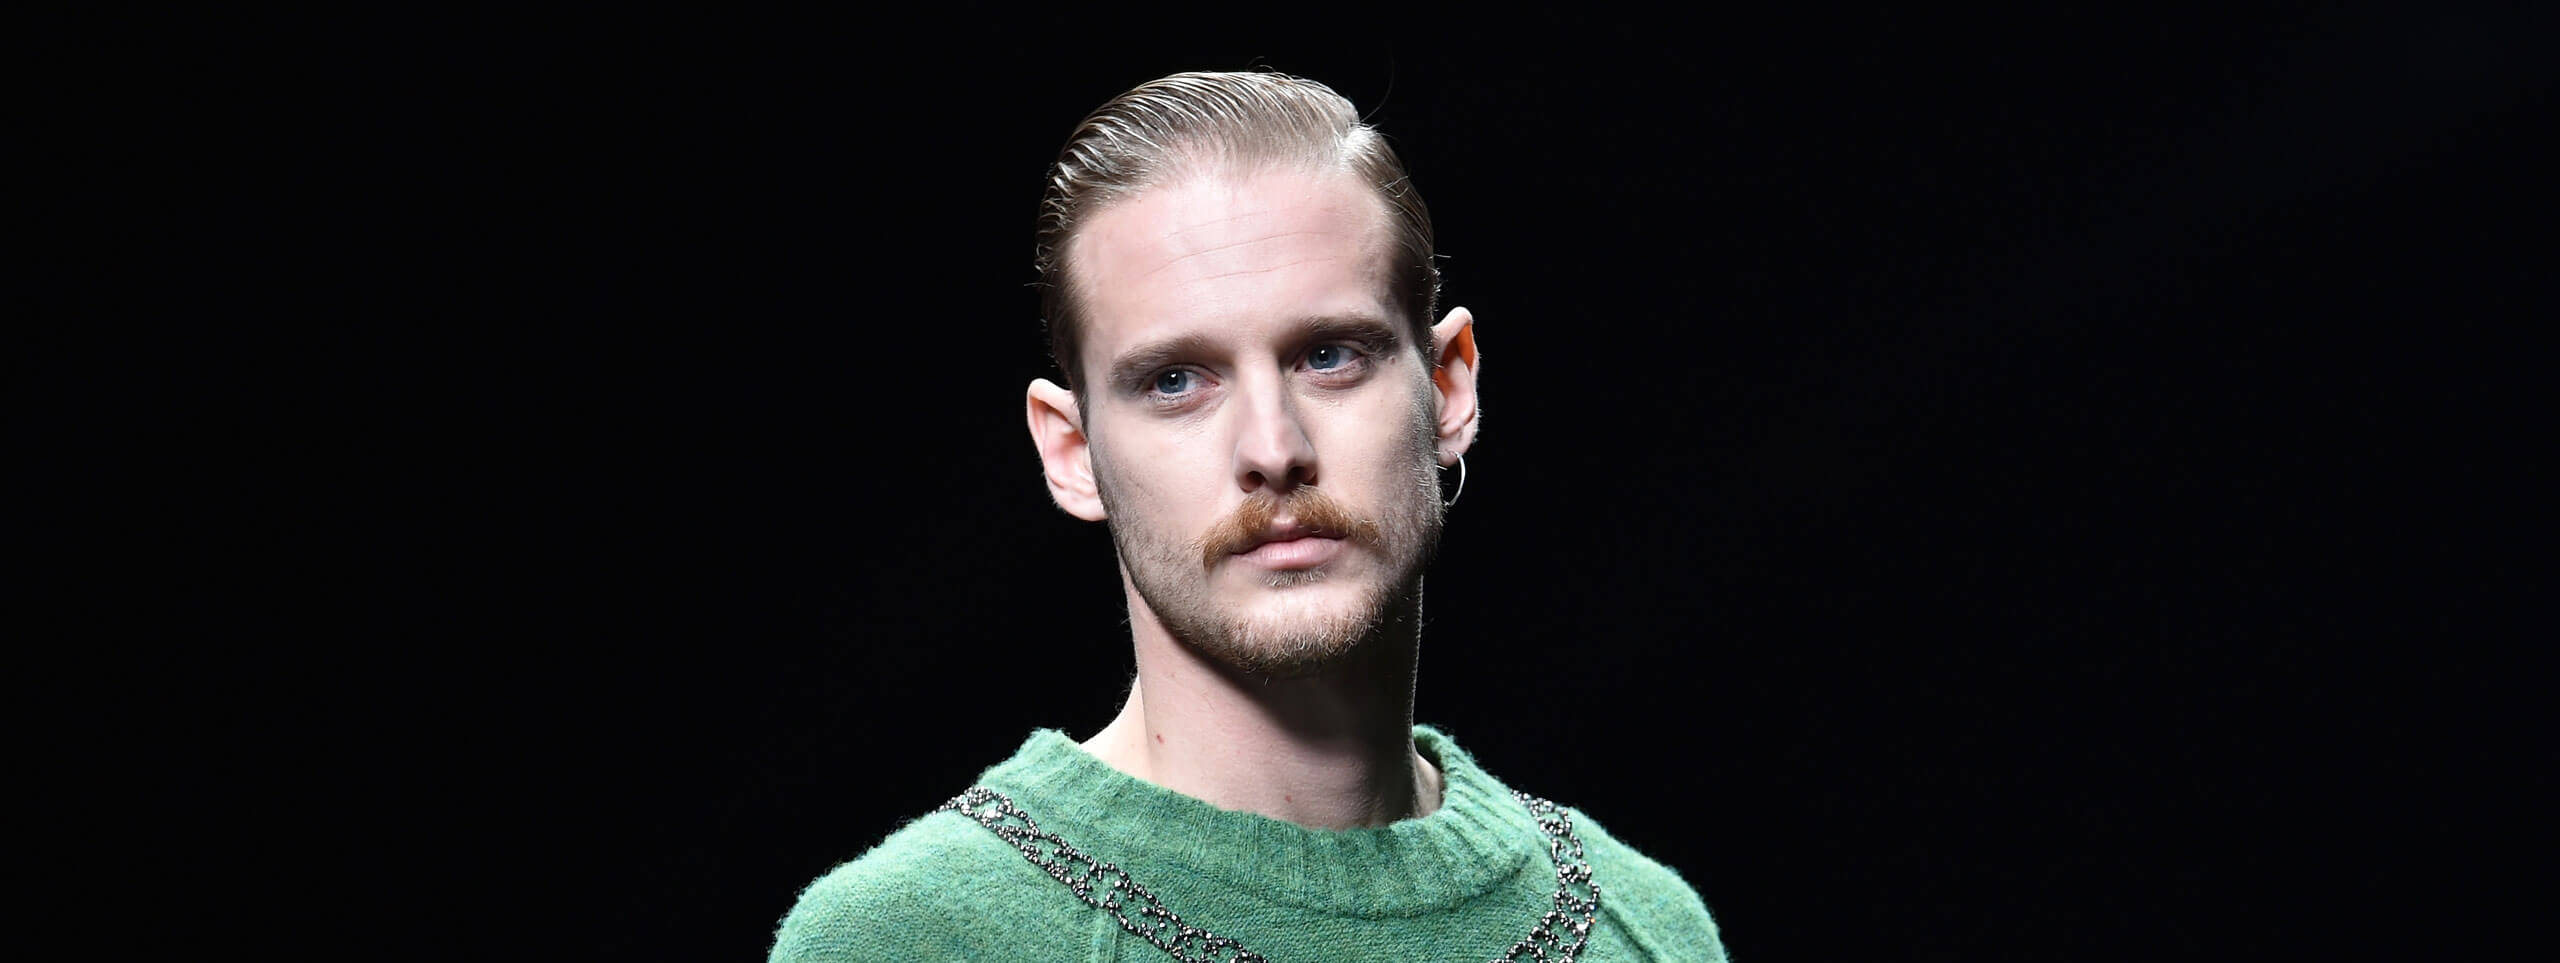 Male model with swept back hairstyle and an earring